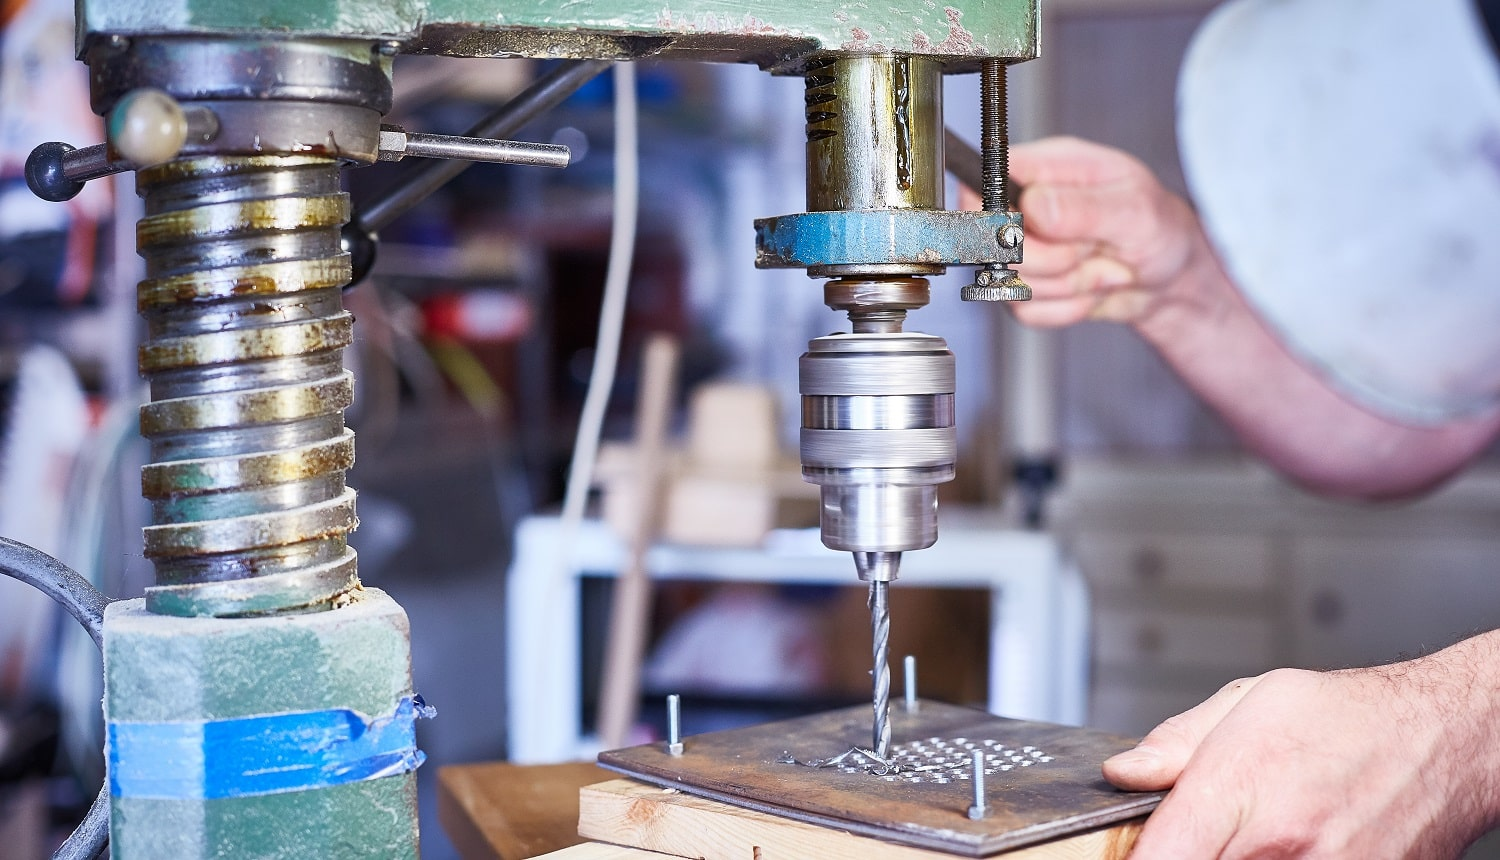 Close-up. hand heavy industrial worker is working on metal work factory process by performing mechanical turning operation at machine for steel structure industry.